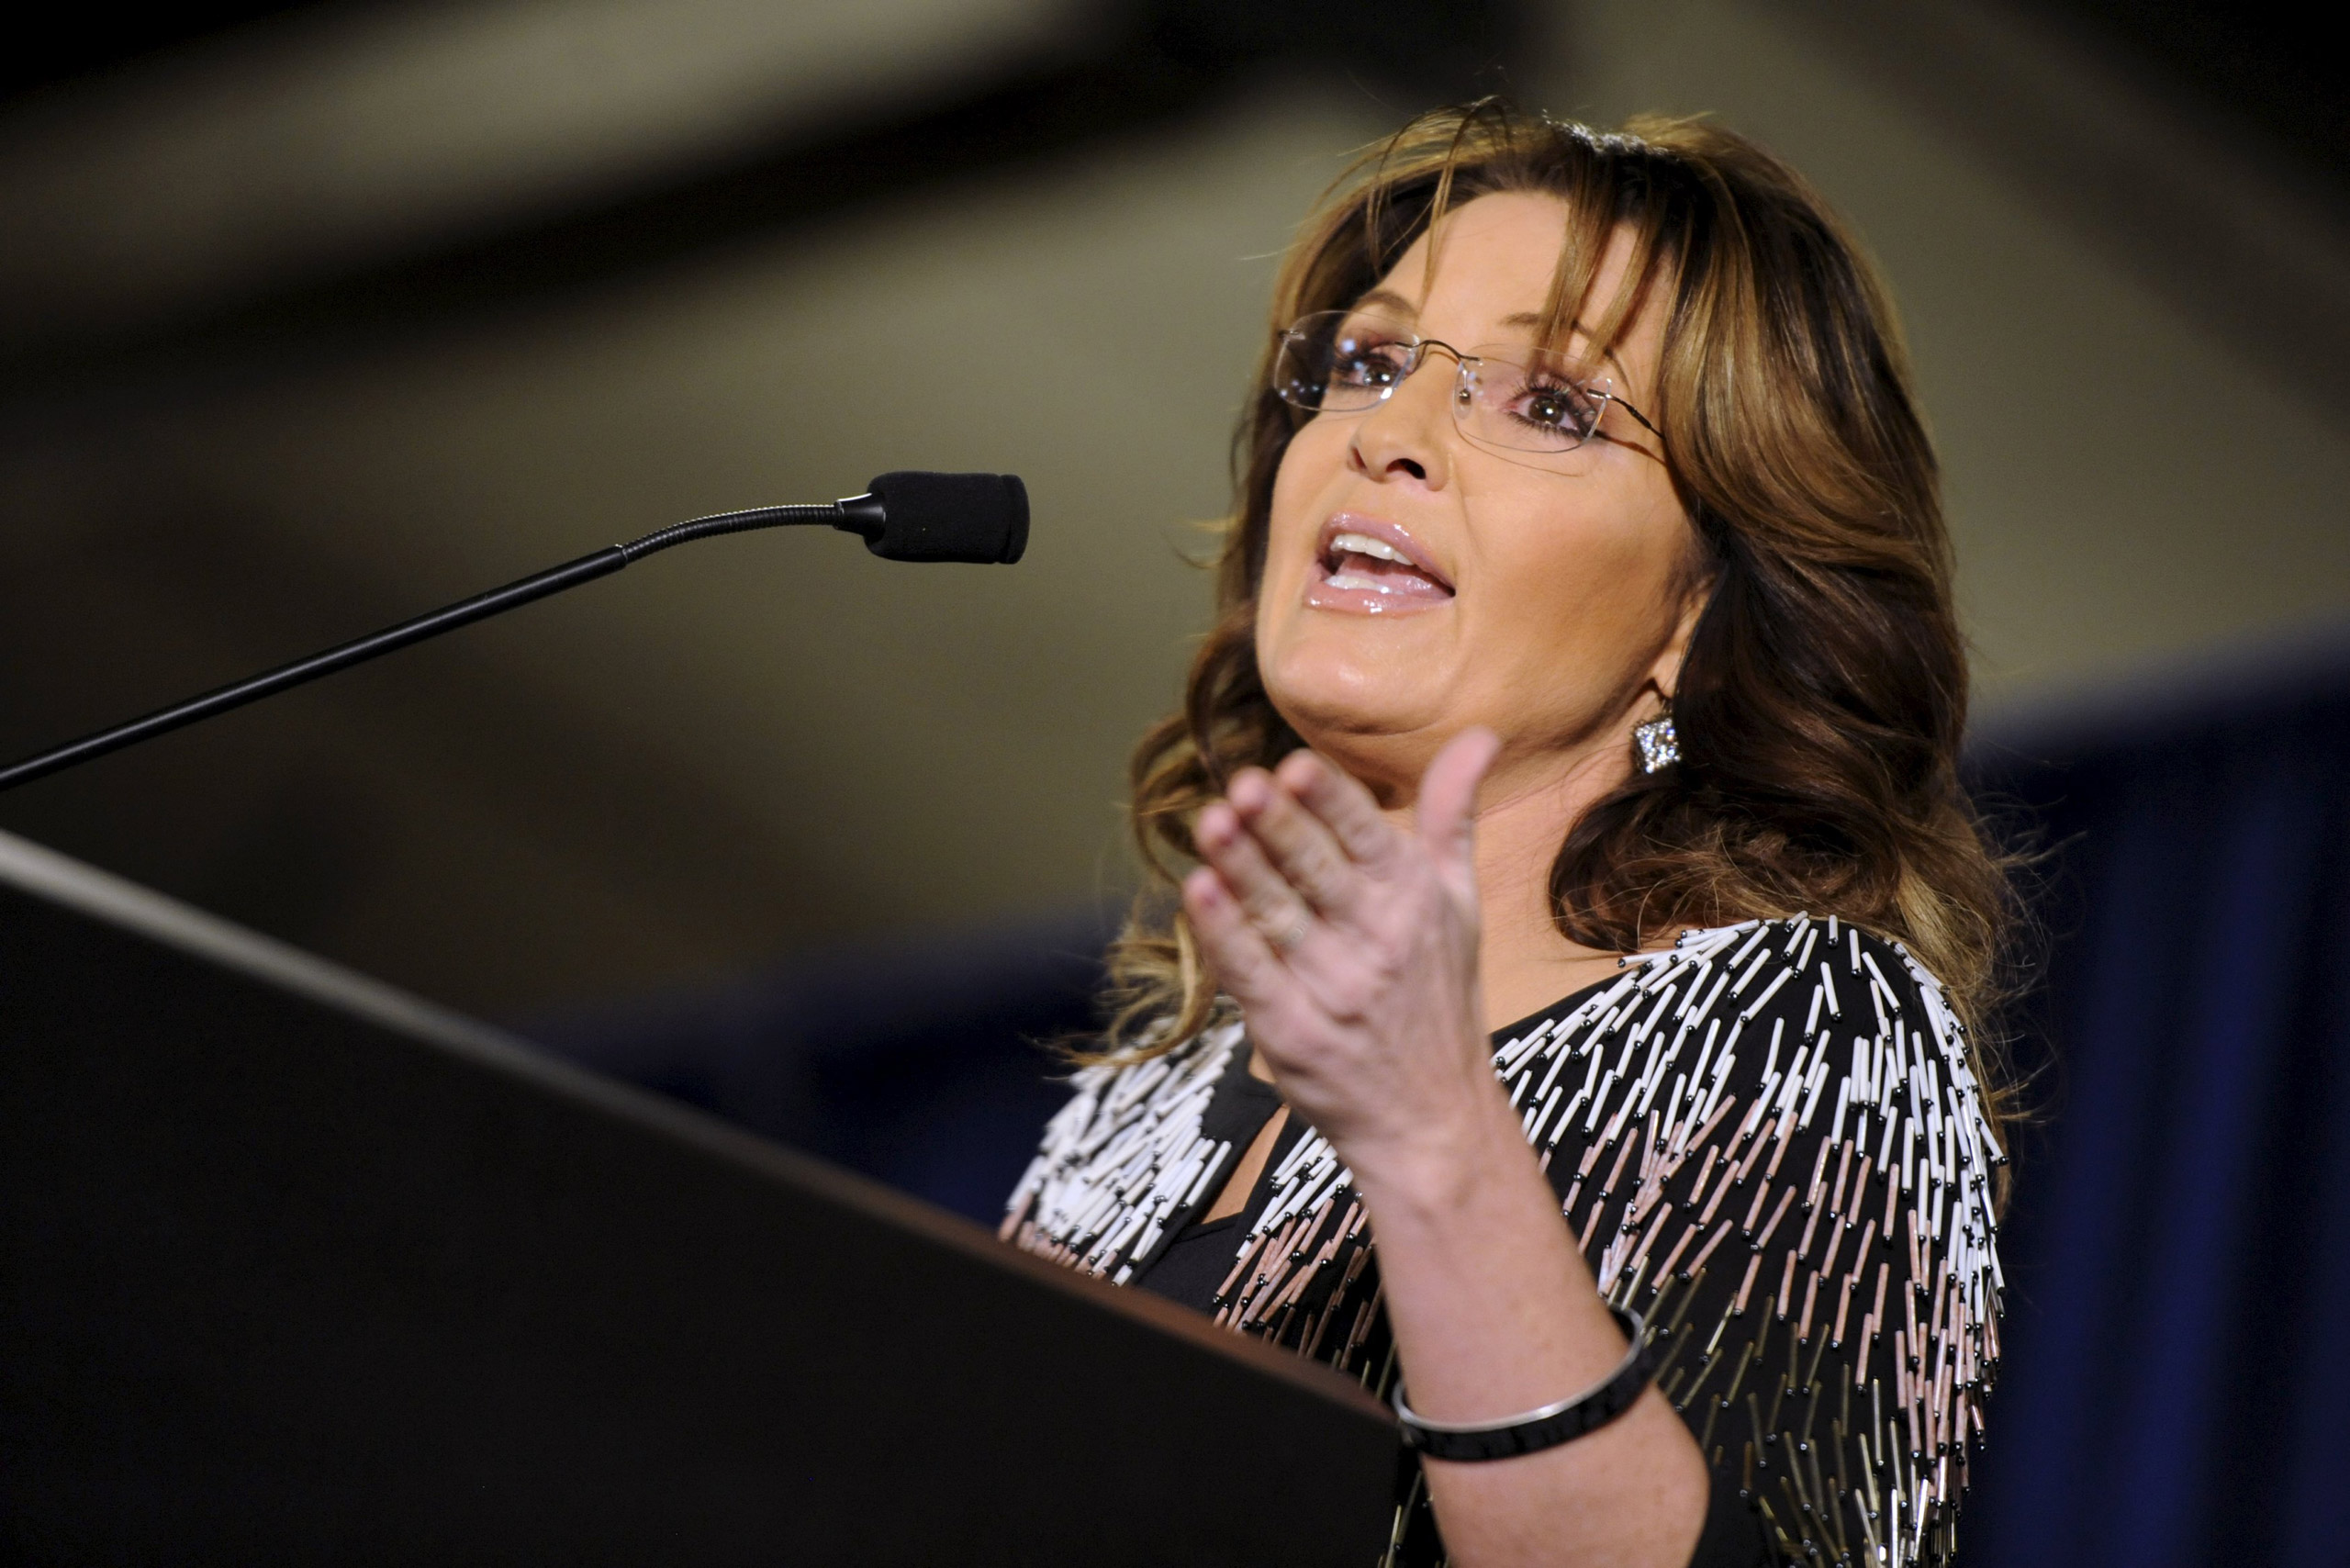 Sarah Palin speaks at a rally endorsing U.S. Republican presidential candidate Donald Trump for President at Iowa State University in Ames, Iowa, on Jan.19, 2016.